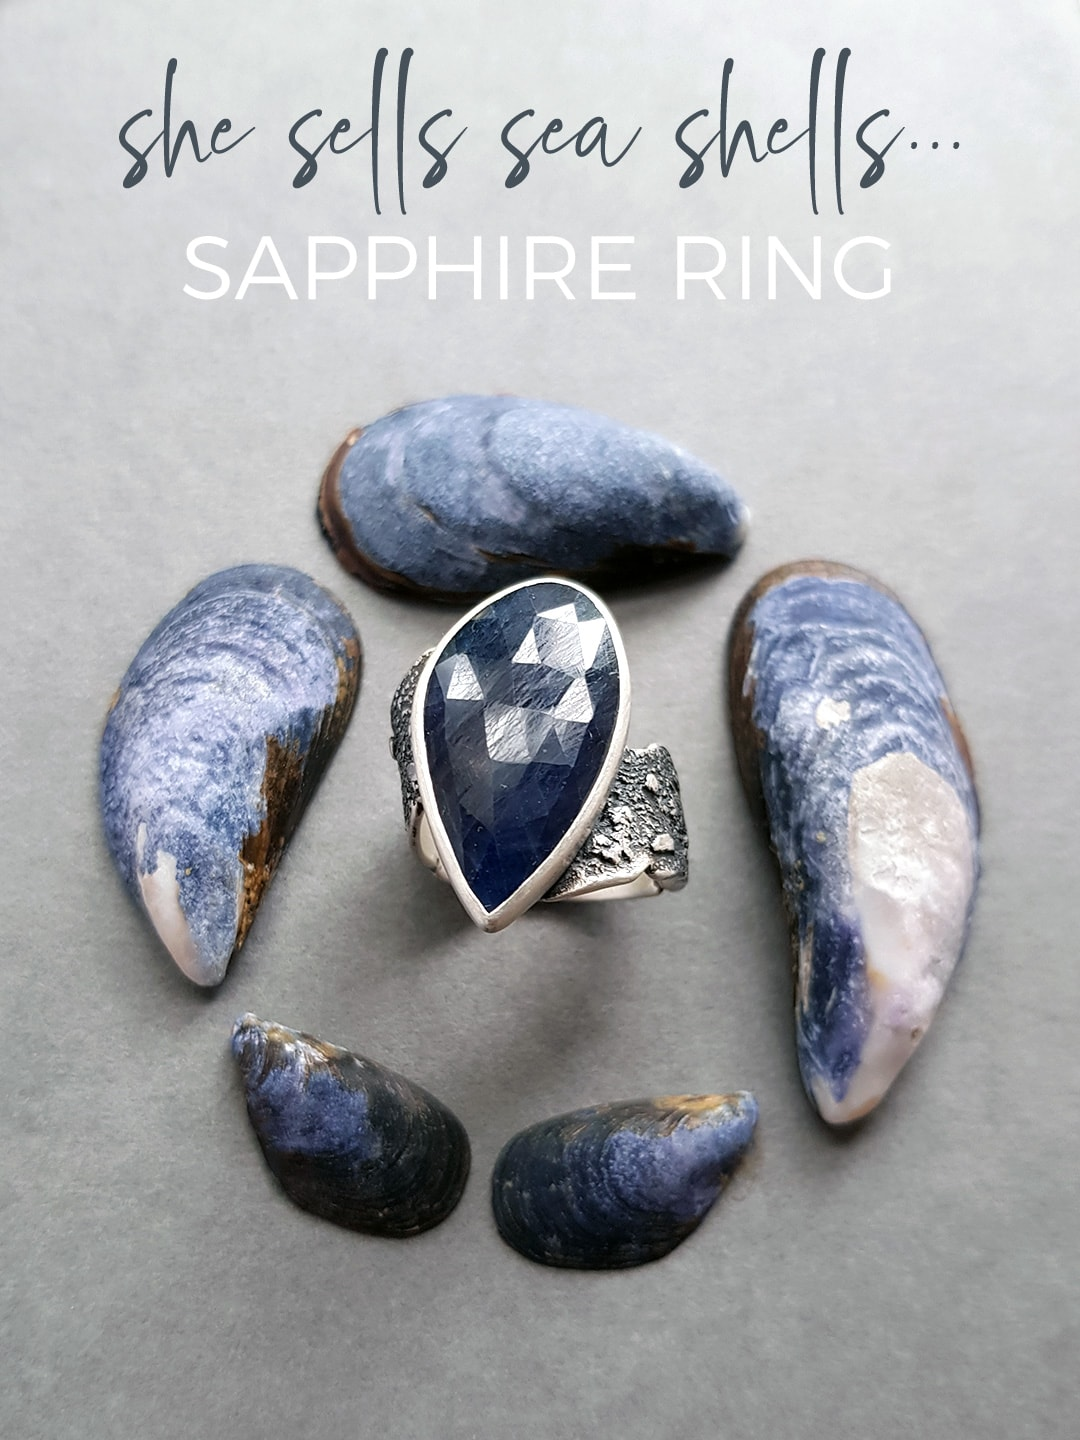 blue sapphire ring in textured silver resembling sea shells